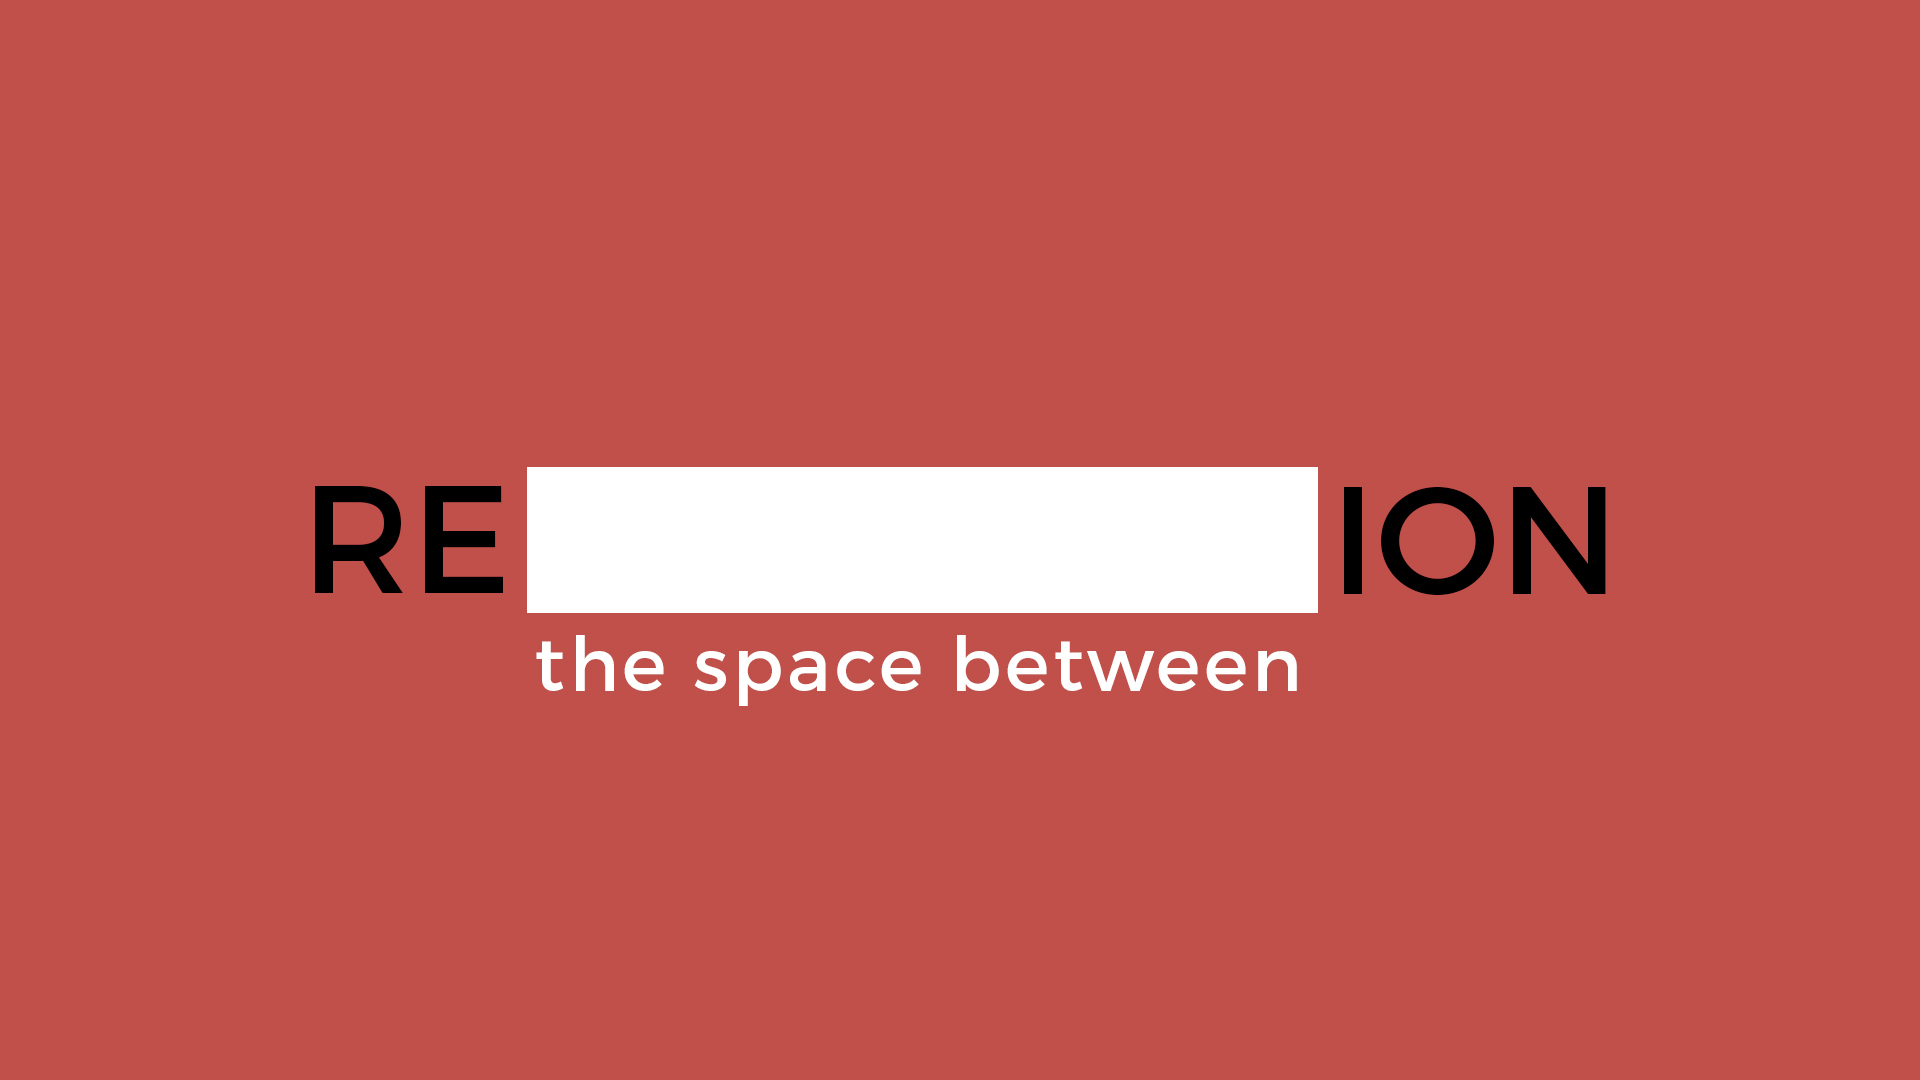 The Space Between - January 21 - April 1, 2017